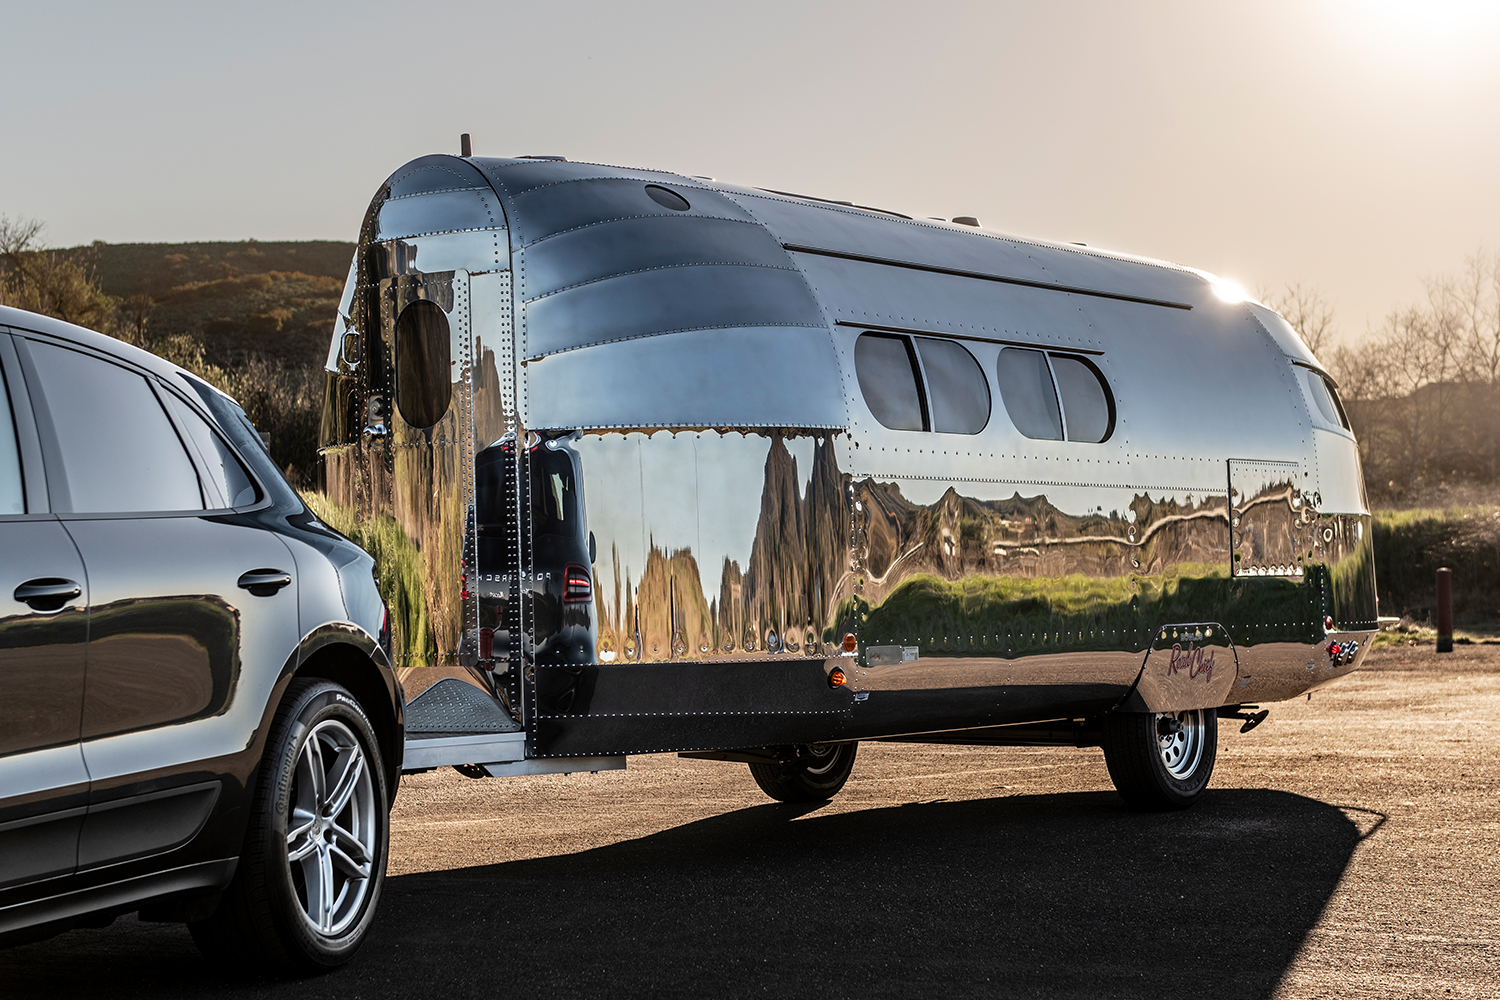 Bowlus Road Chief aluminum trailer being pulled by an SUV